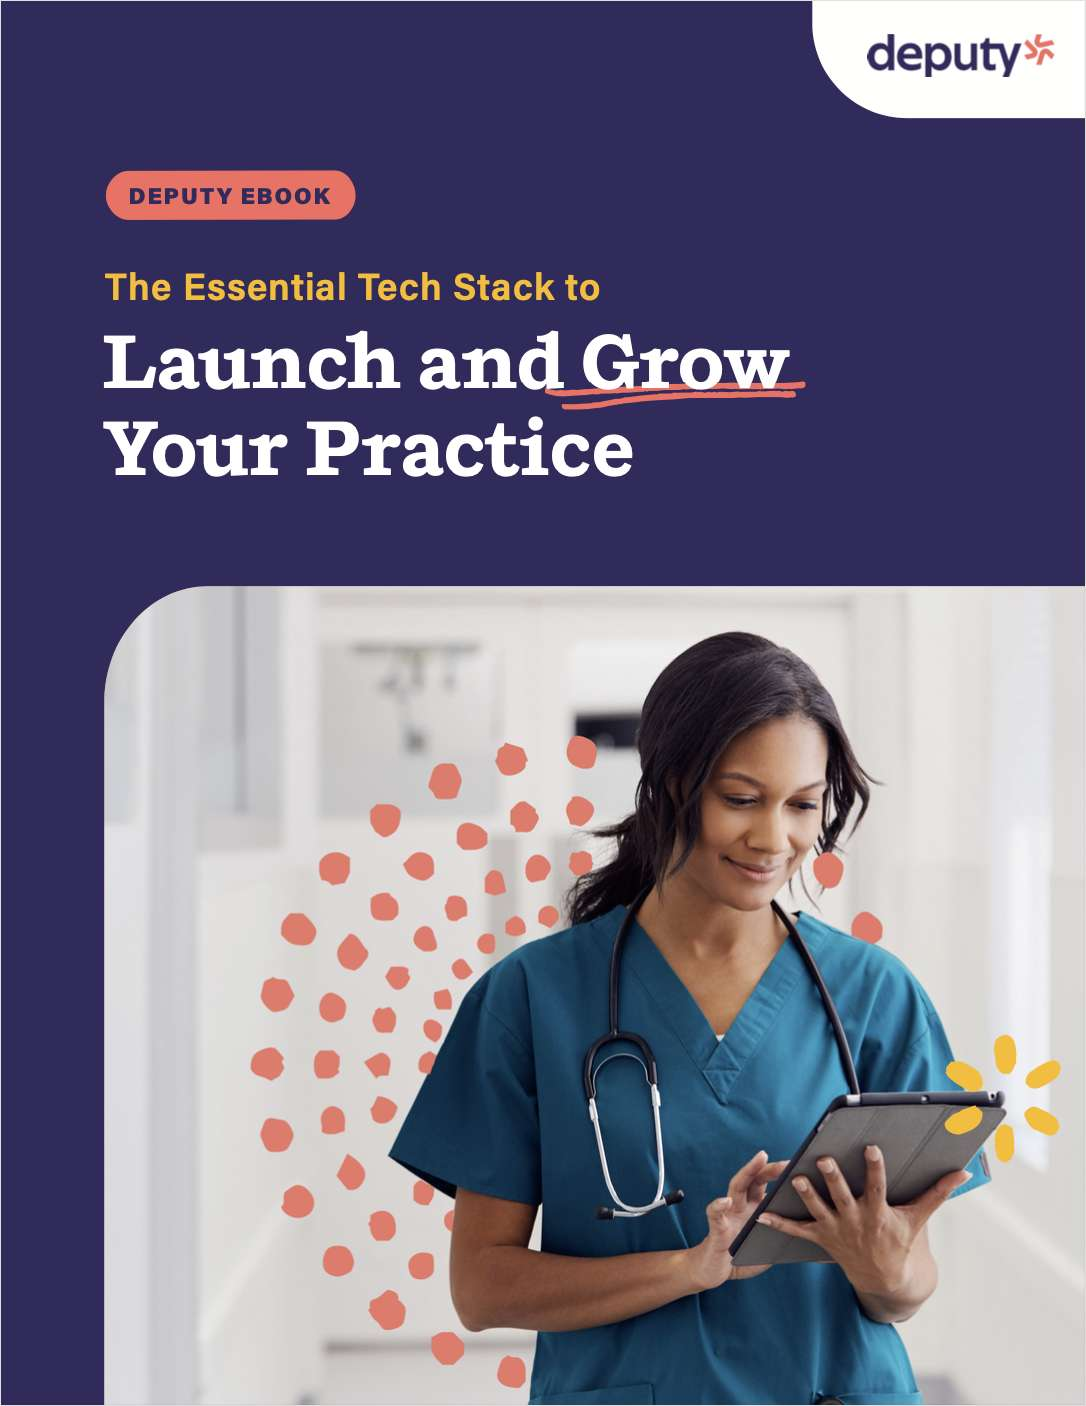 The Essential Tech Stack to Launch and Grow Your Practice